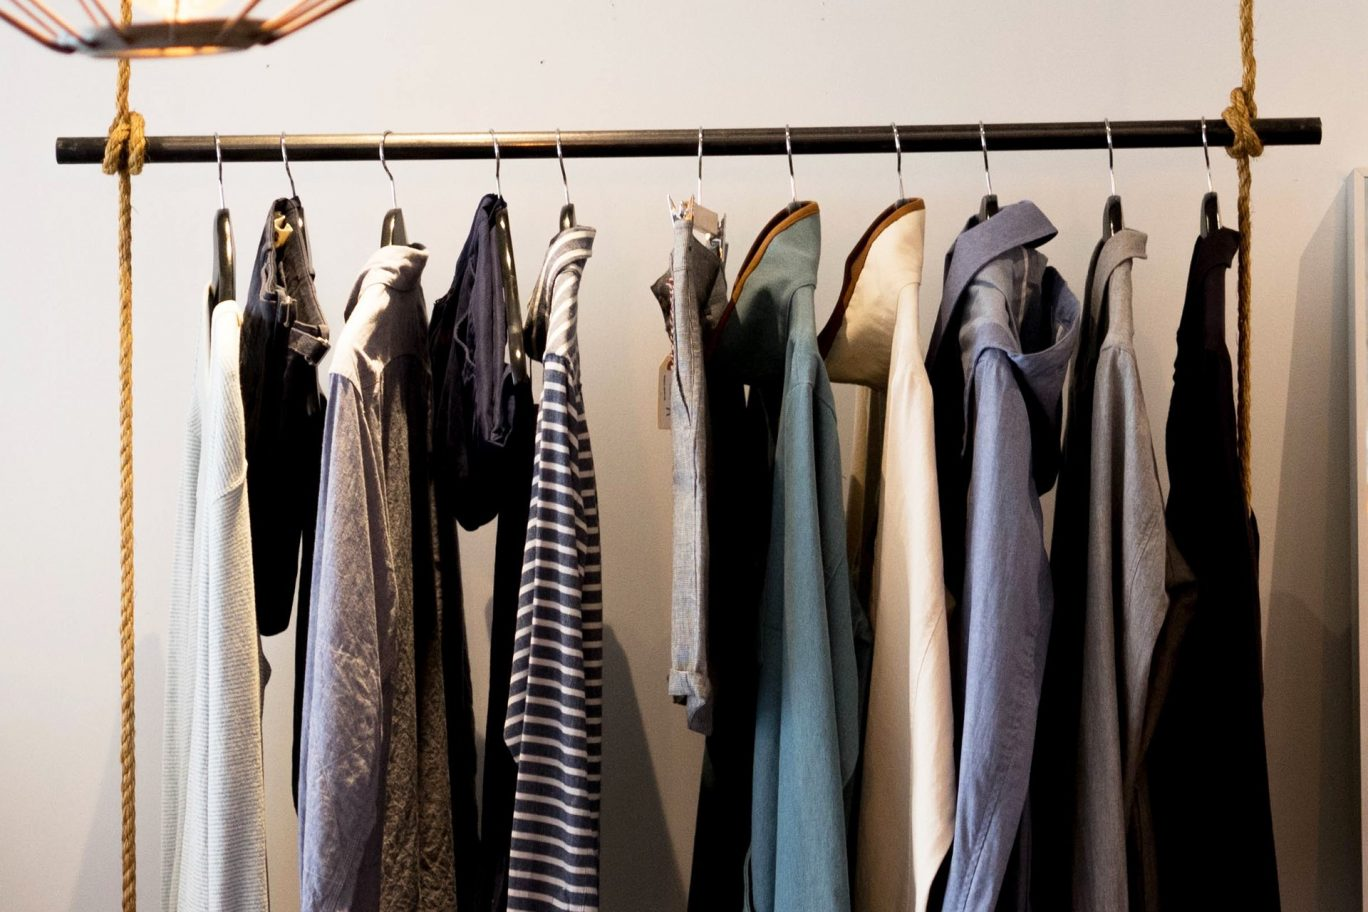 7 Racks to Display Your Clothes With Style